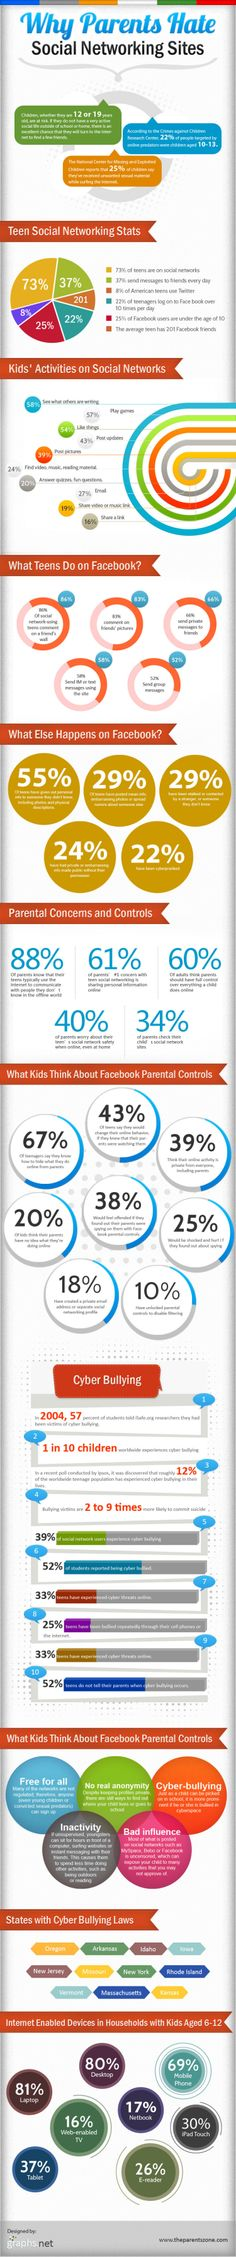 Why parent hate social networking sites